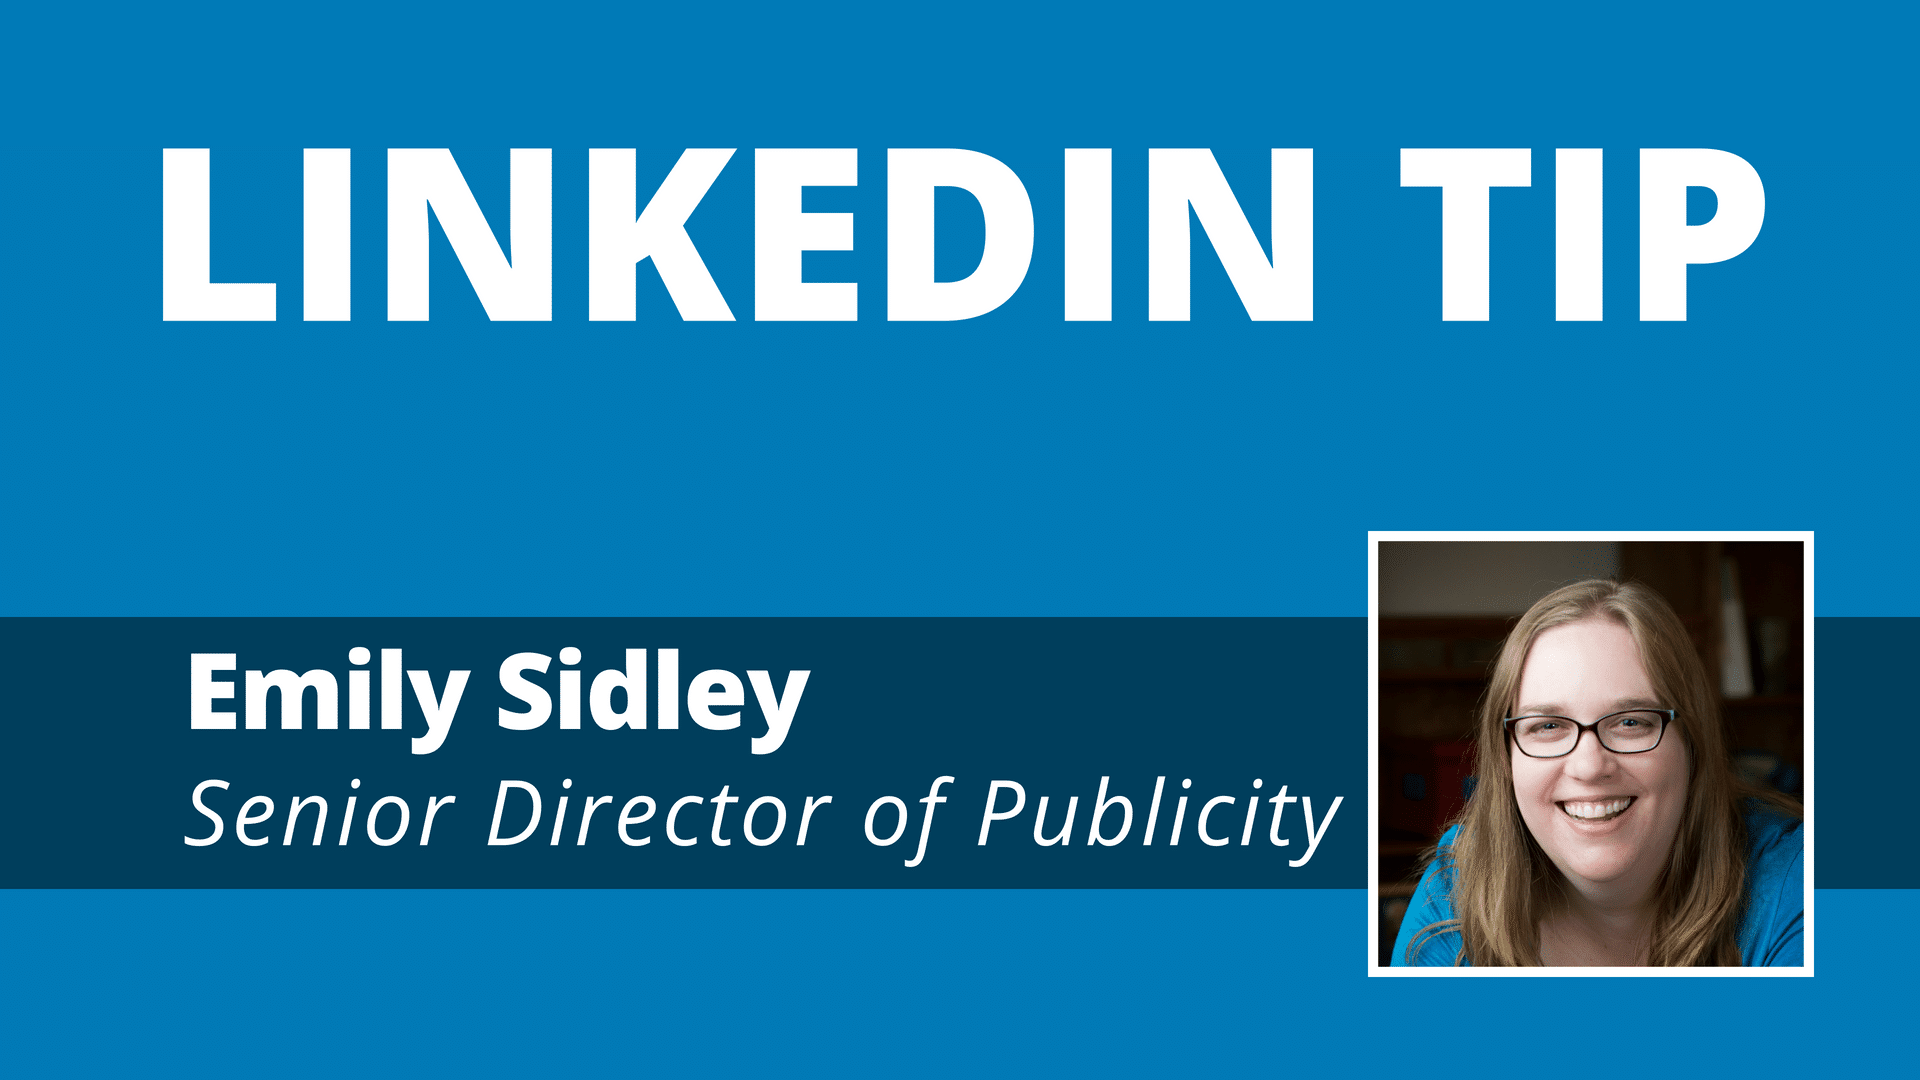 Video: How Active Should You Be On LinkedIn?